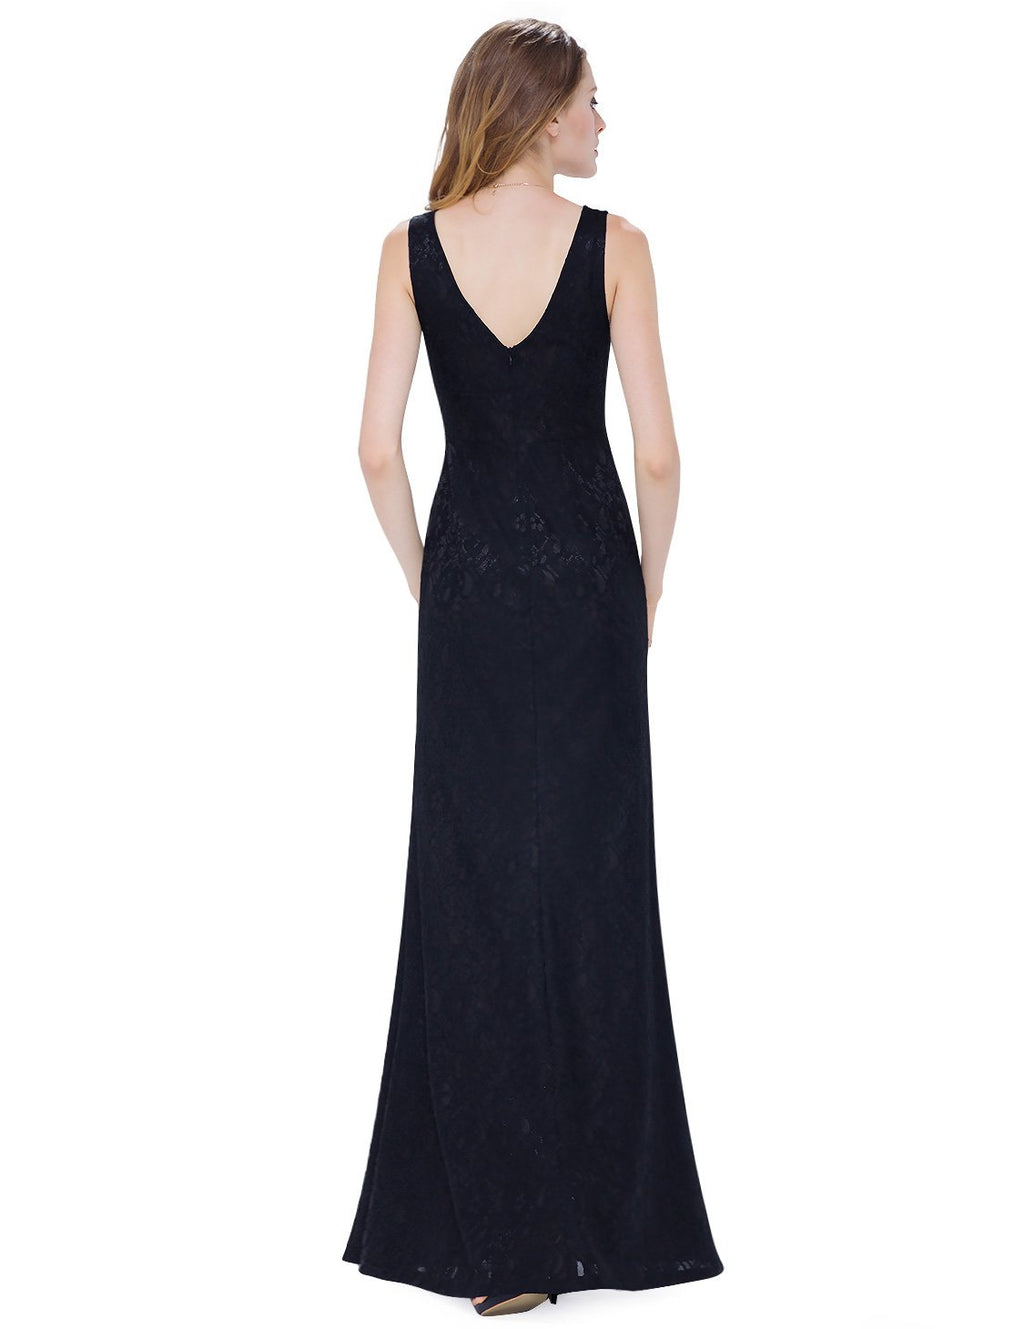 Sexy Neckline Simple Long Dress Black